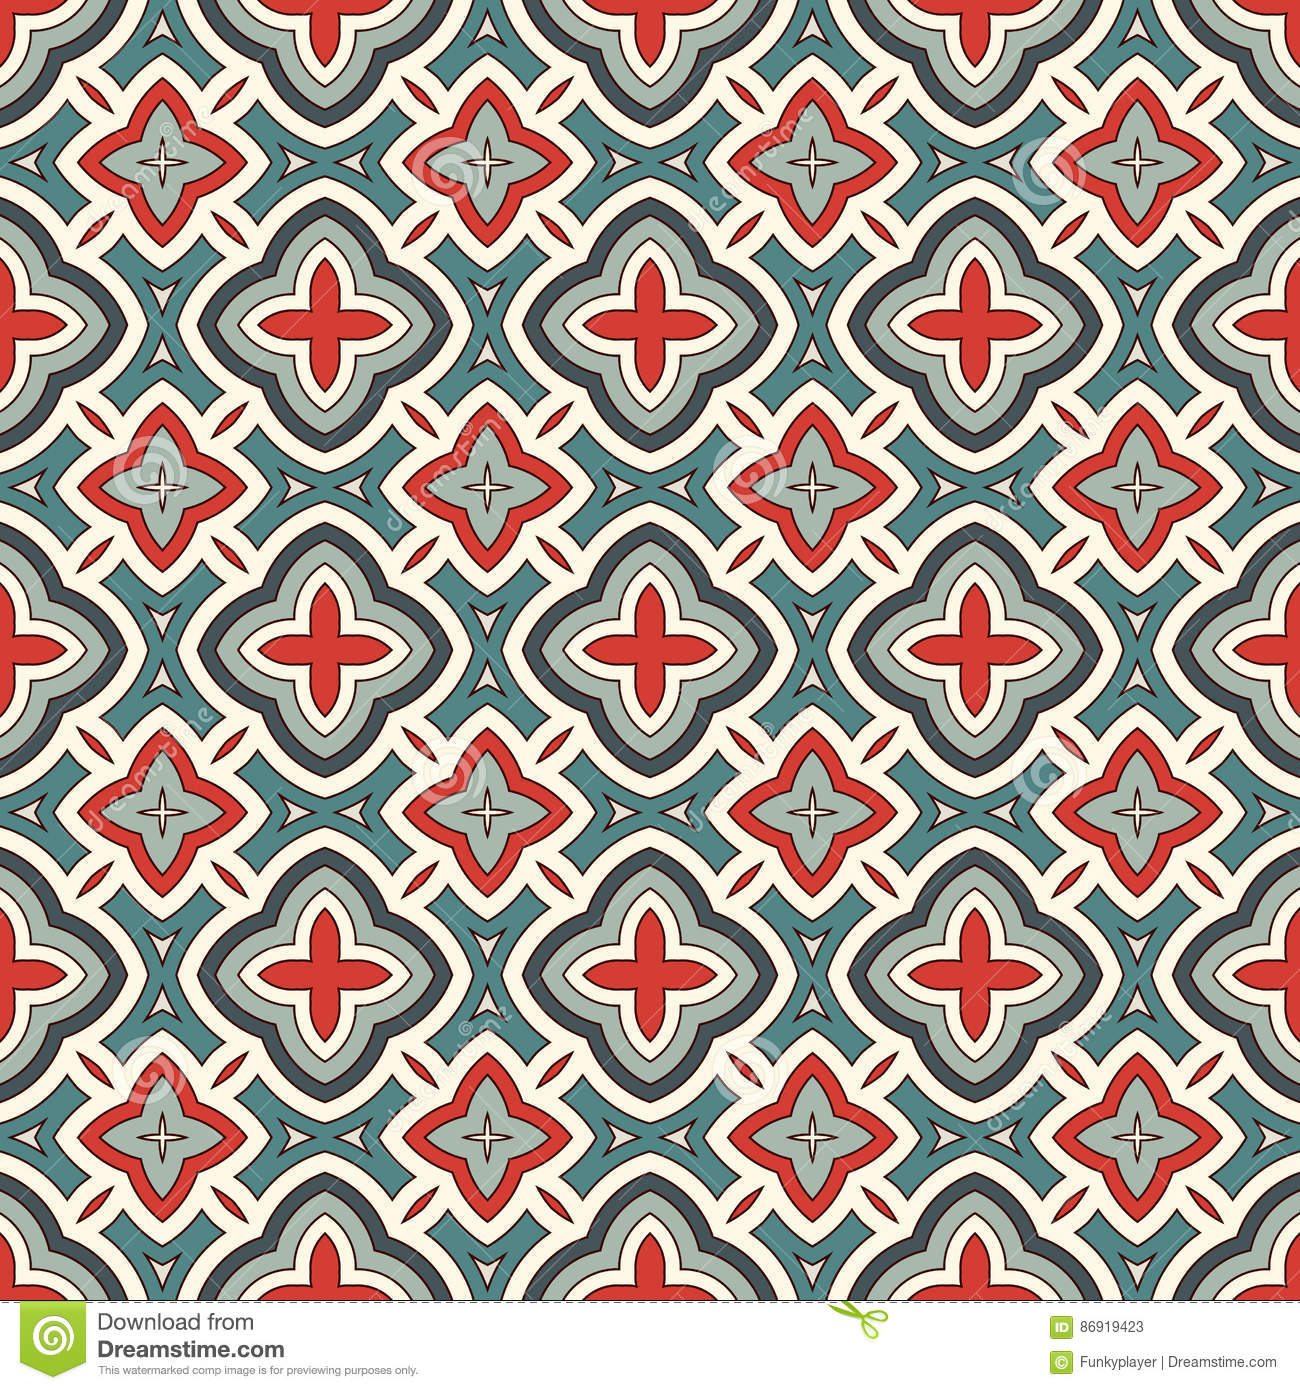 Ethnic Style Seamless Pattern With Floral Motif. Vintage